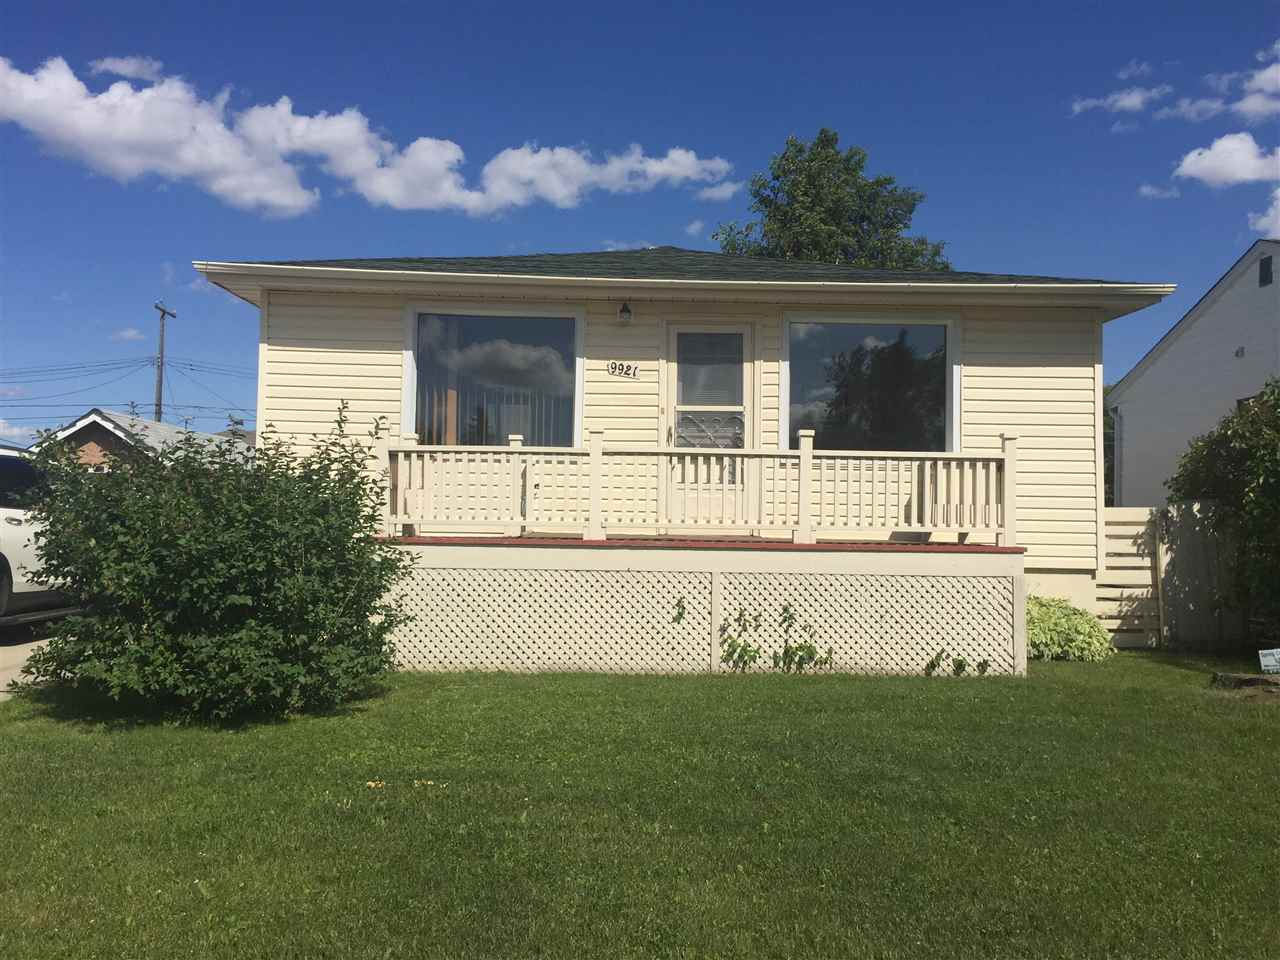 Main Photo: 9921 163 Street in Edmonton: Zone 22 House for sale : MLS(r) # E4070885